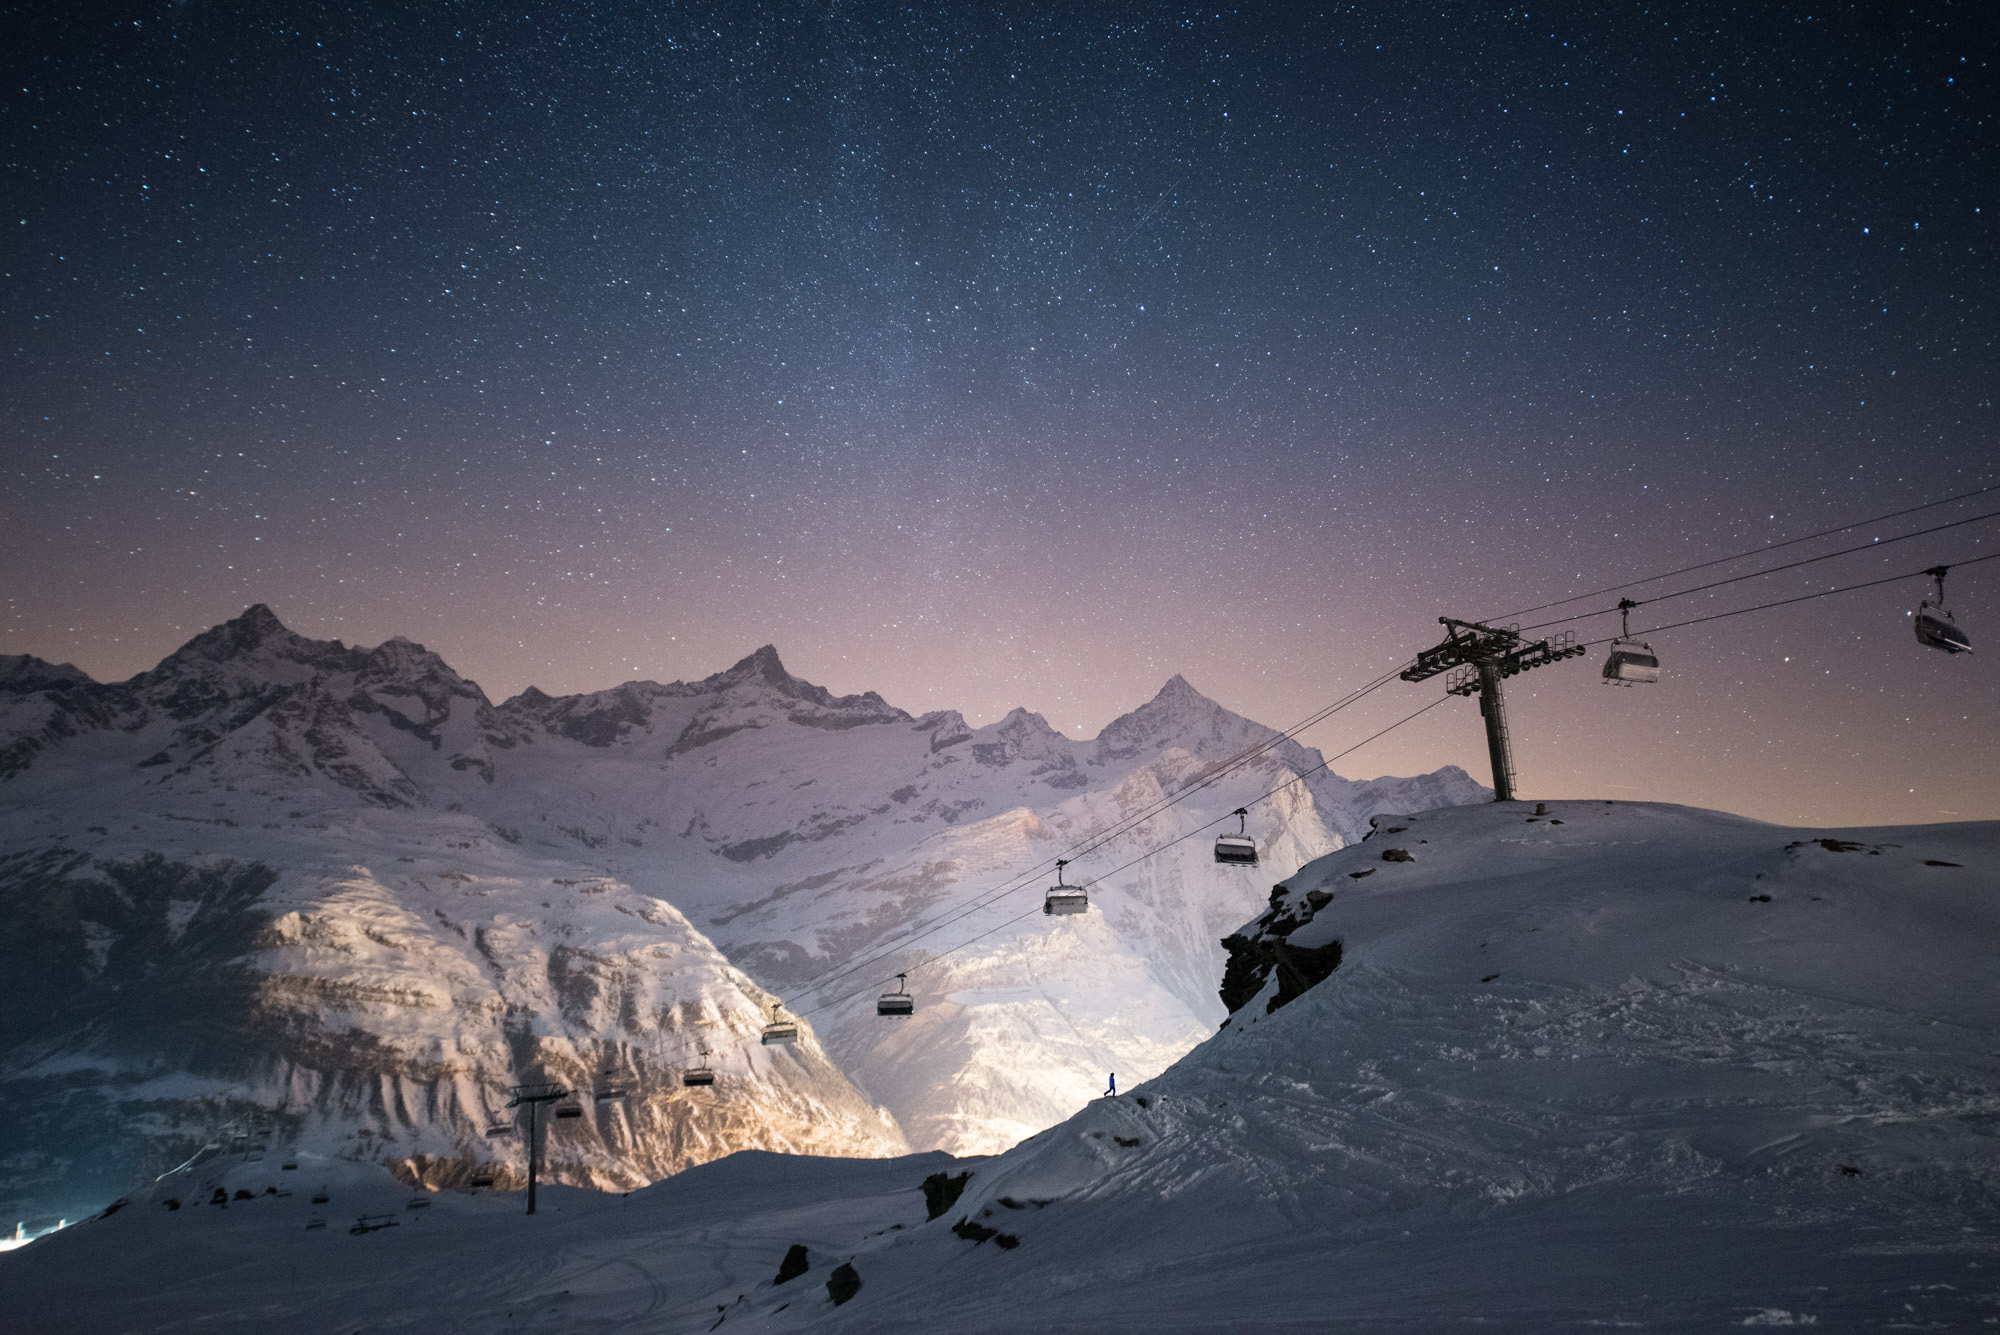 A starry night sky in the snowy mountains with a small figure walking in front of ski lifts